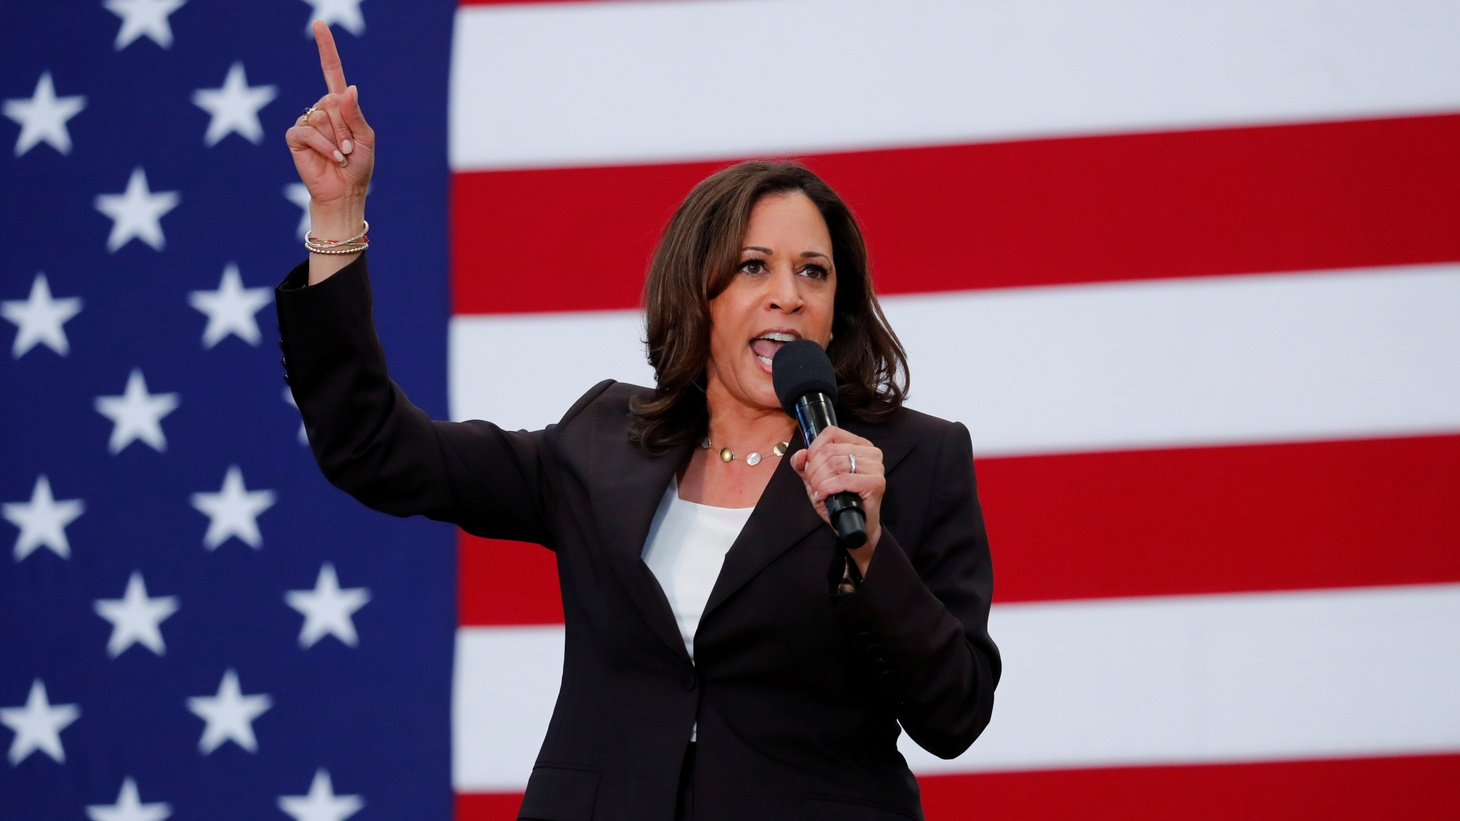 U.S. Senator Kamala Harris holds an organizing event in Los Angeles, California, U.S., May 19, 2019. On August 11, 2020, Joe Biden announced Kamala Harris as his vice presidential running mate.